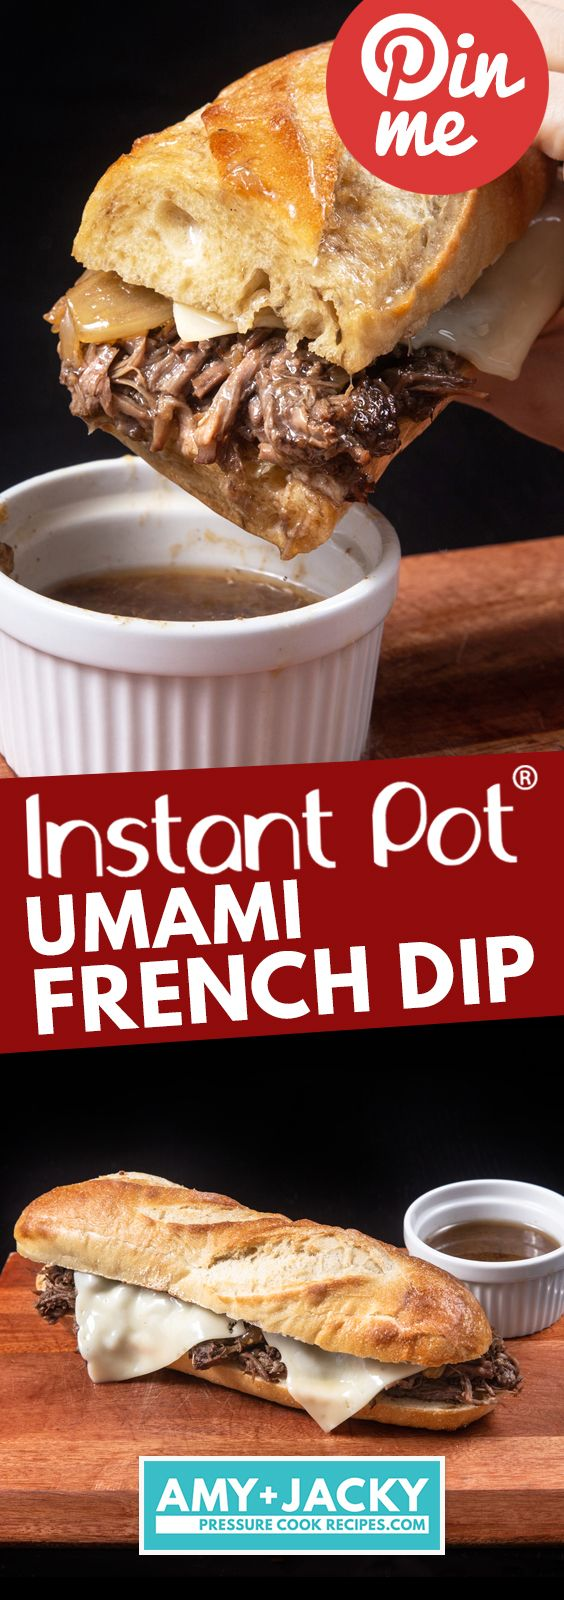 Instant Pot French Dip images